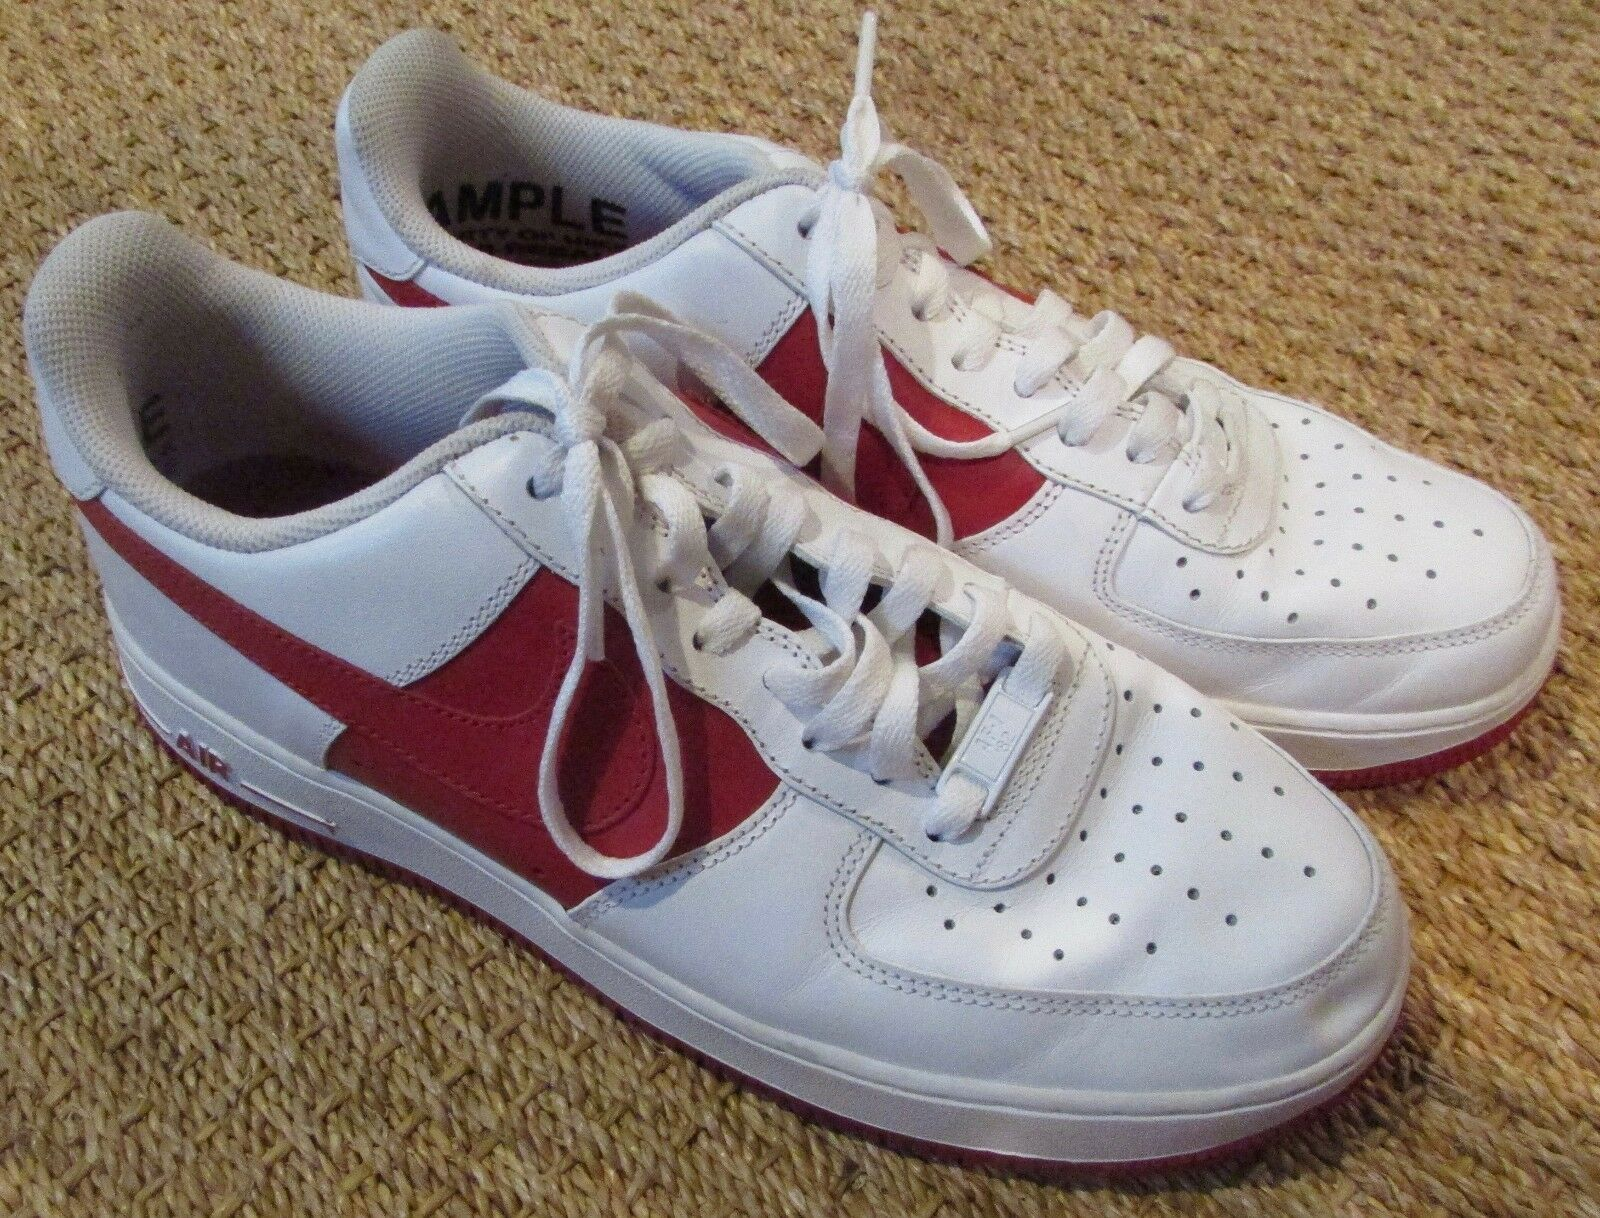 Nike Air Force 1 '07 LE White V Red Size 9 SAMPLE shoes EUC